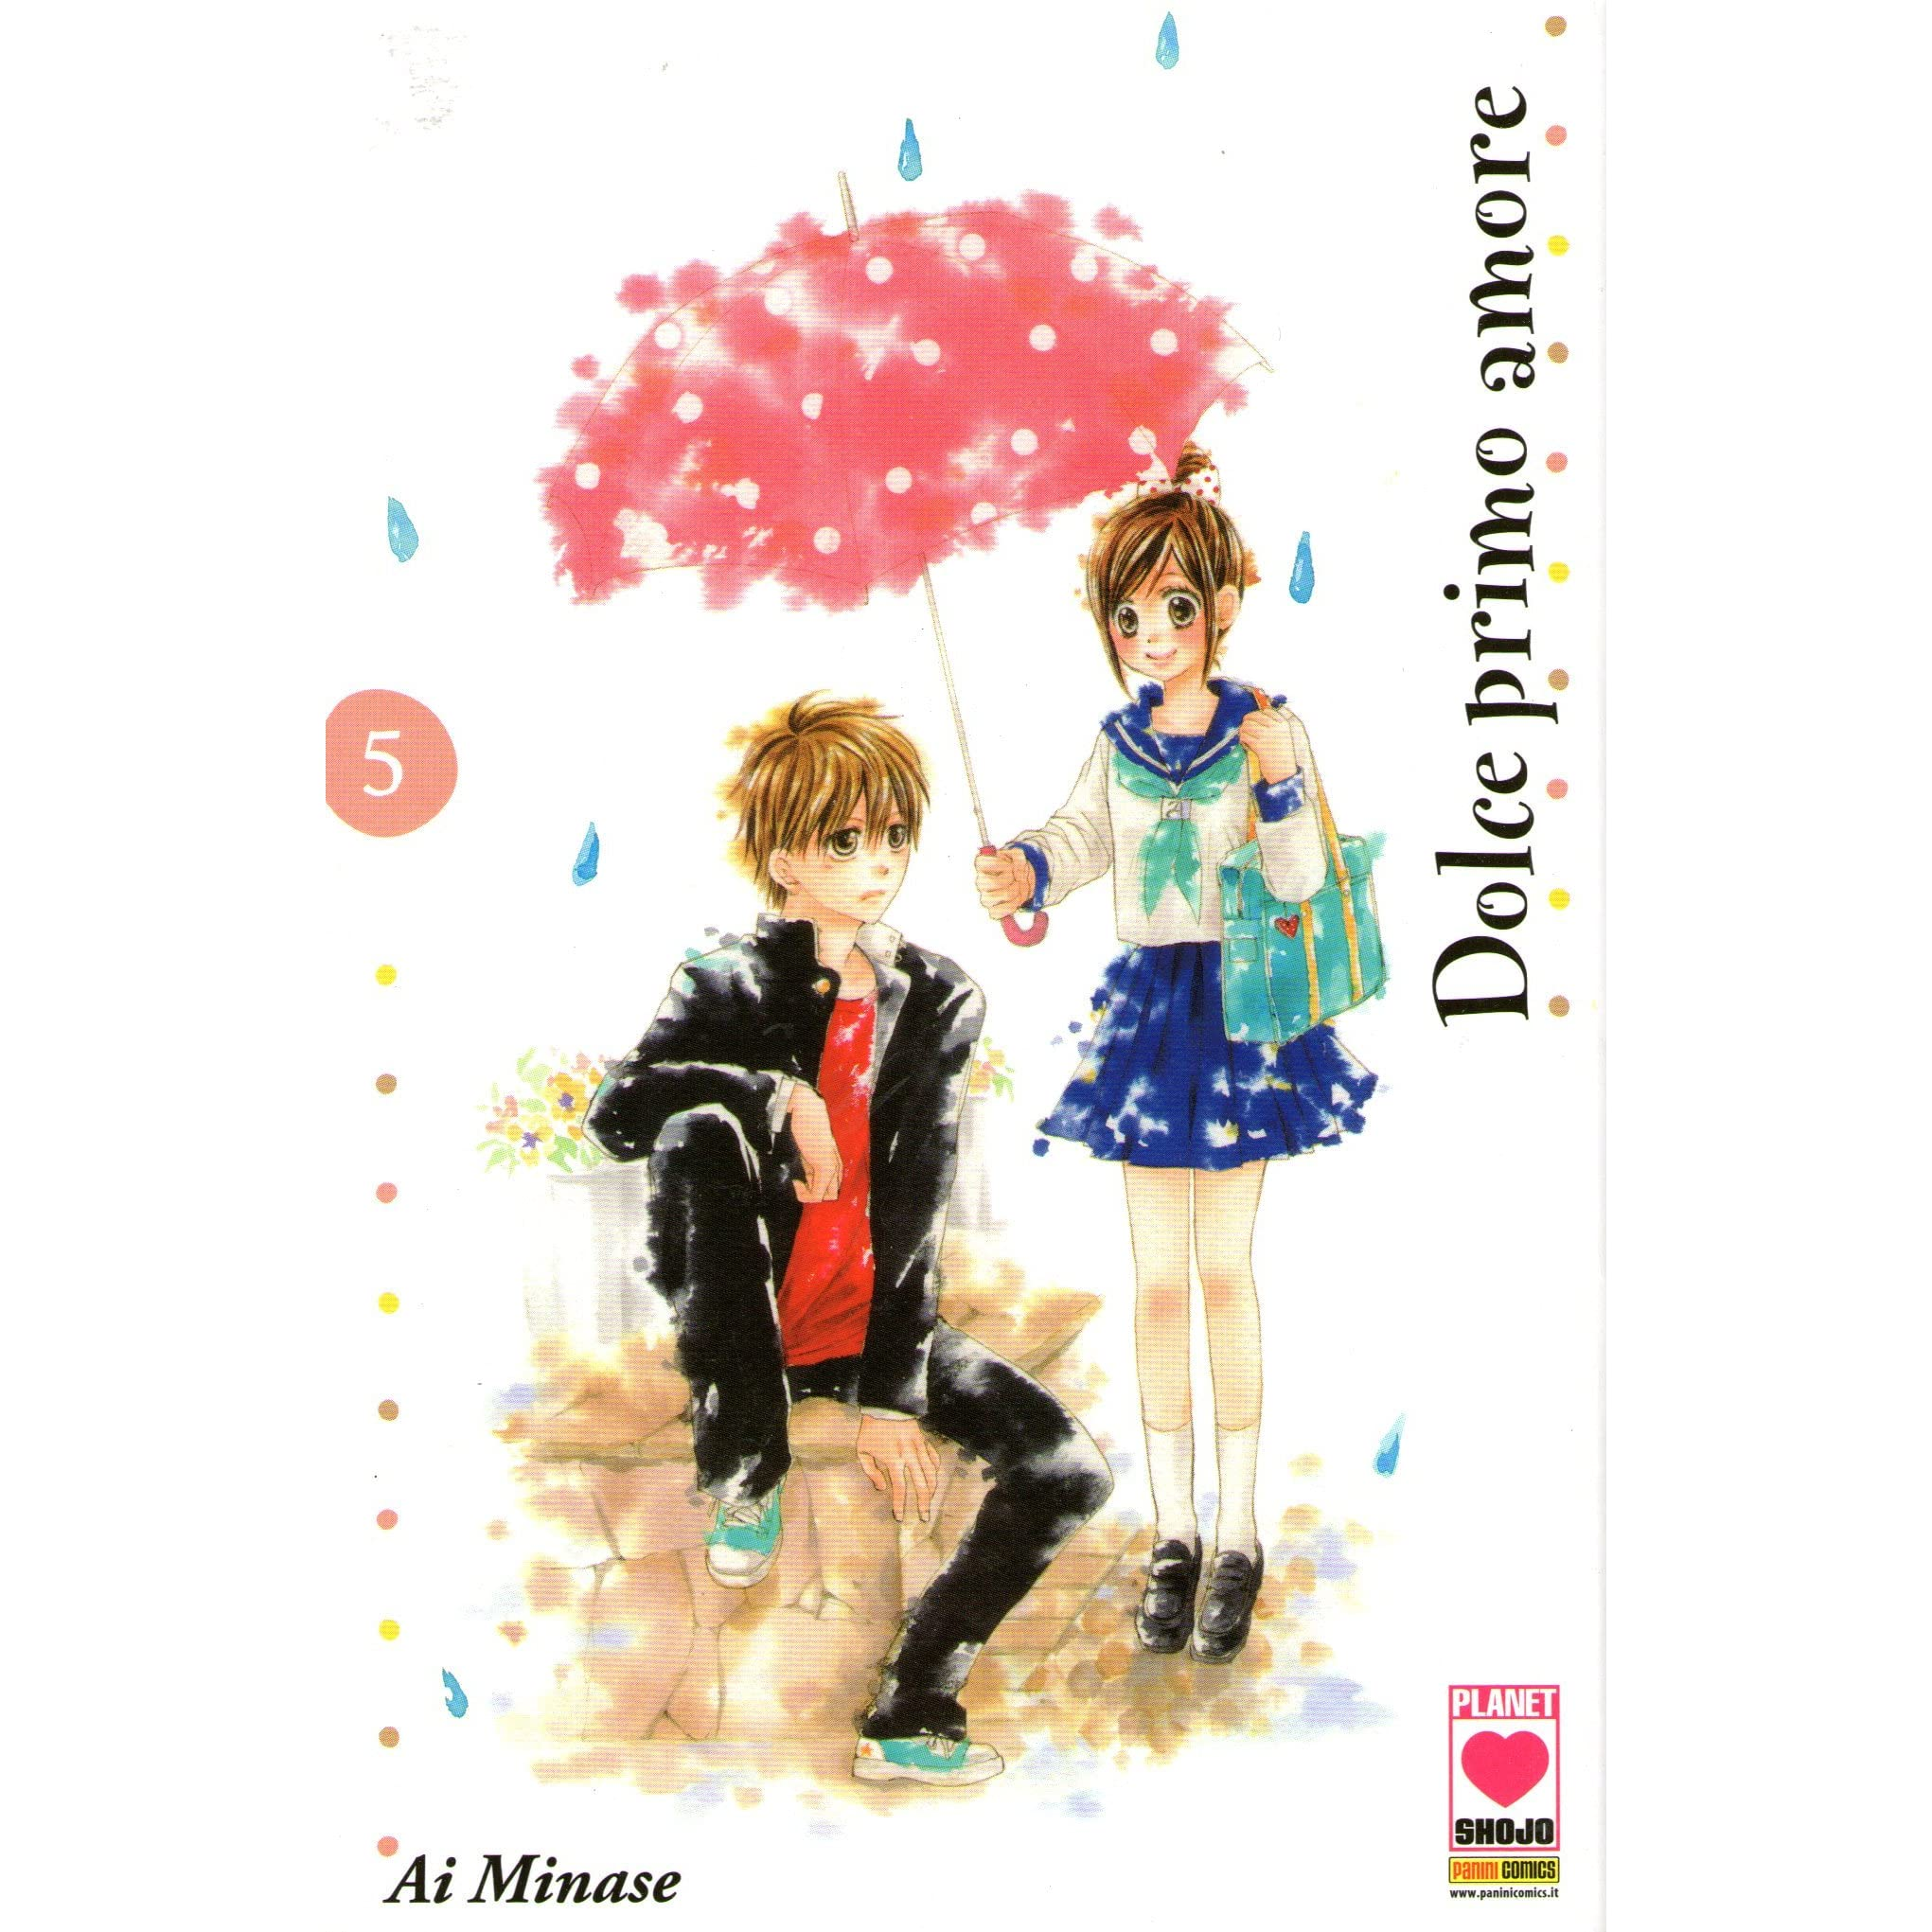 dolce primo amore vol 5 by ai minase